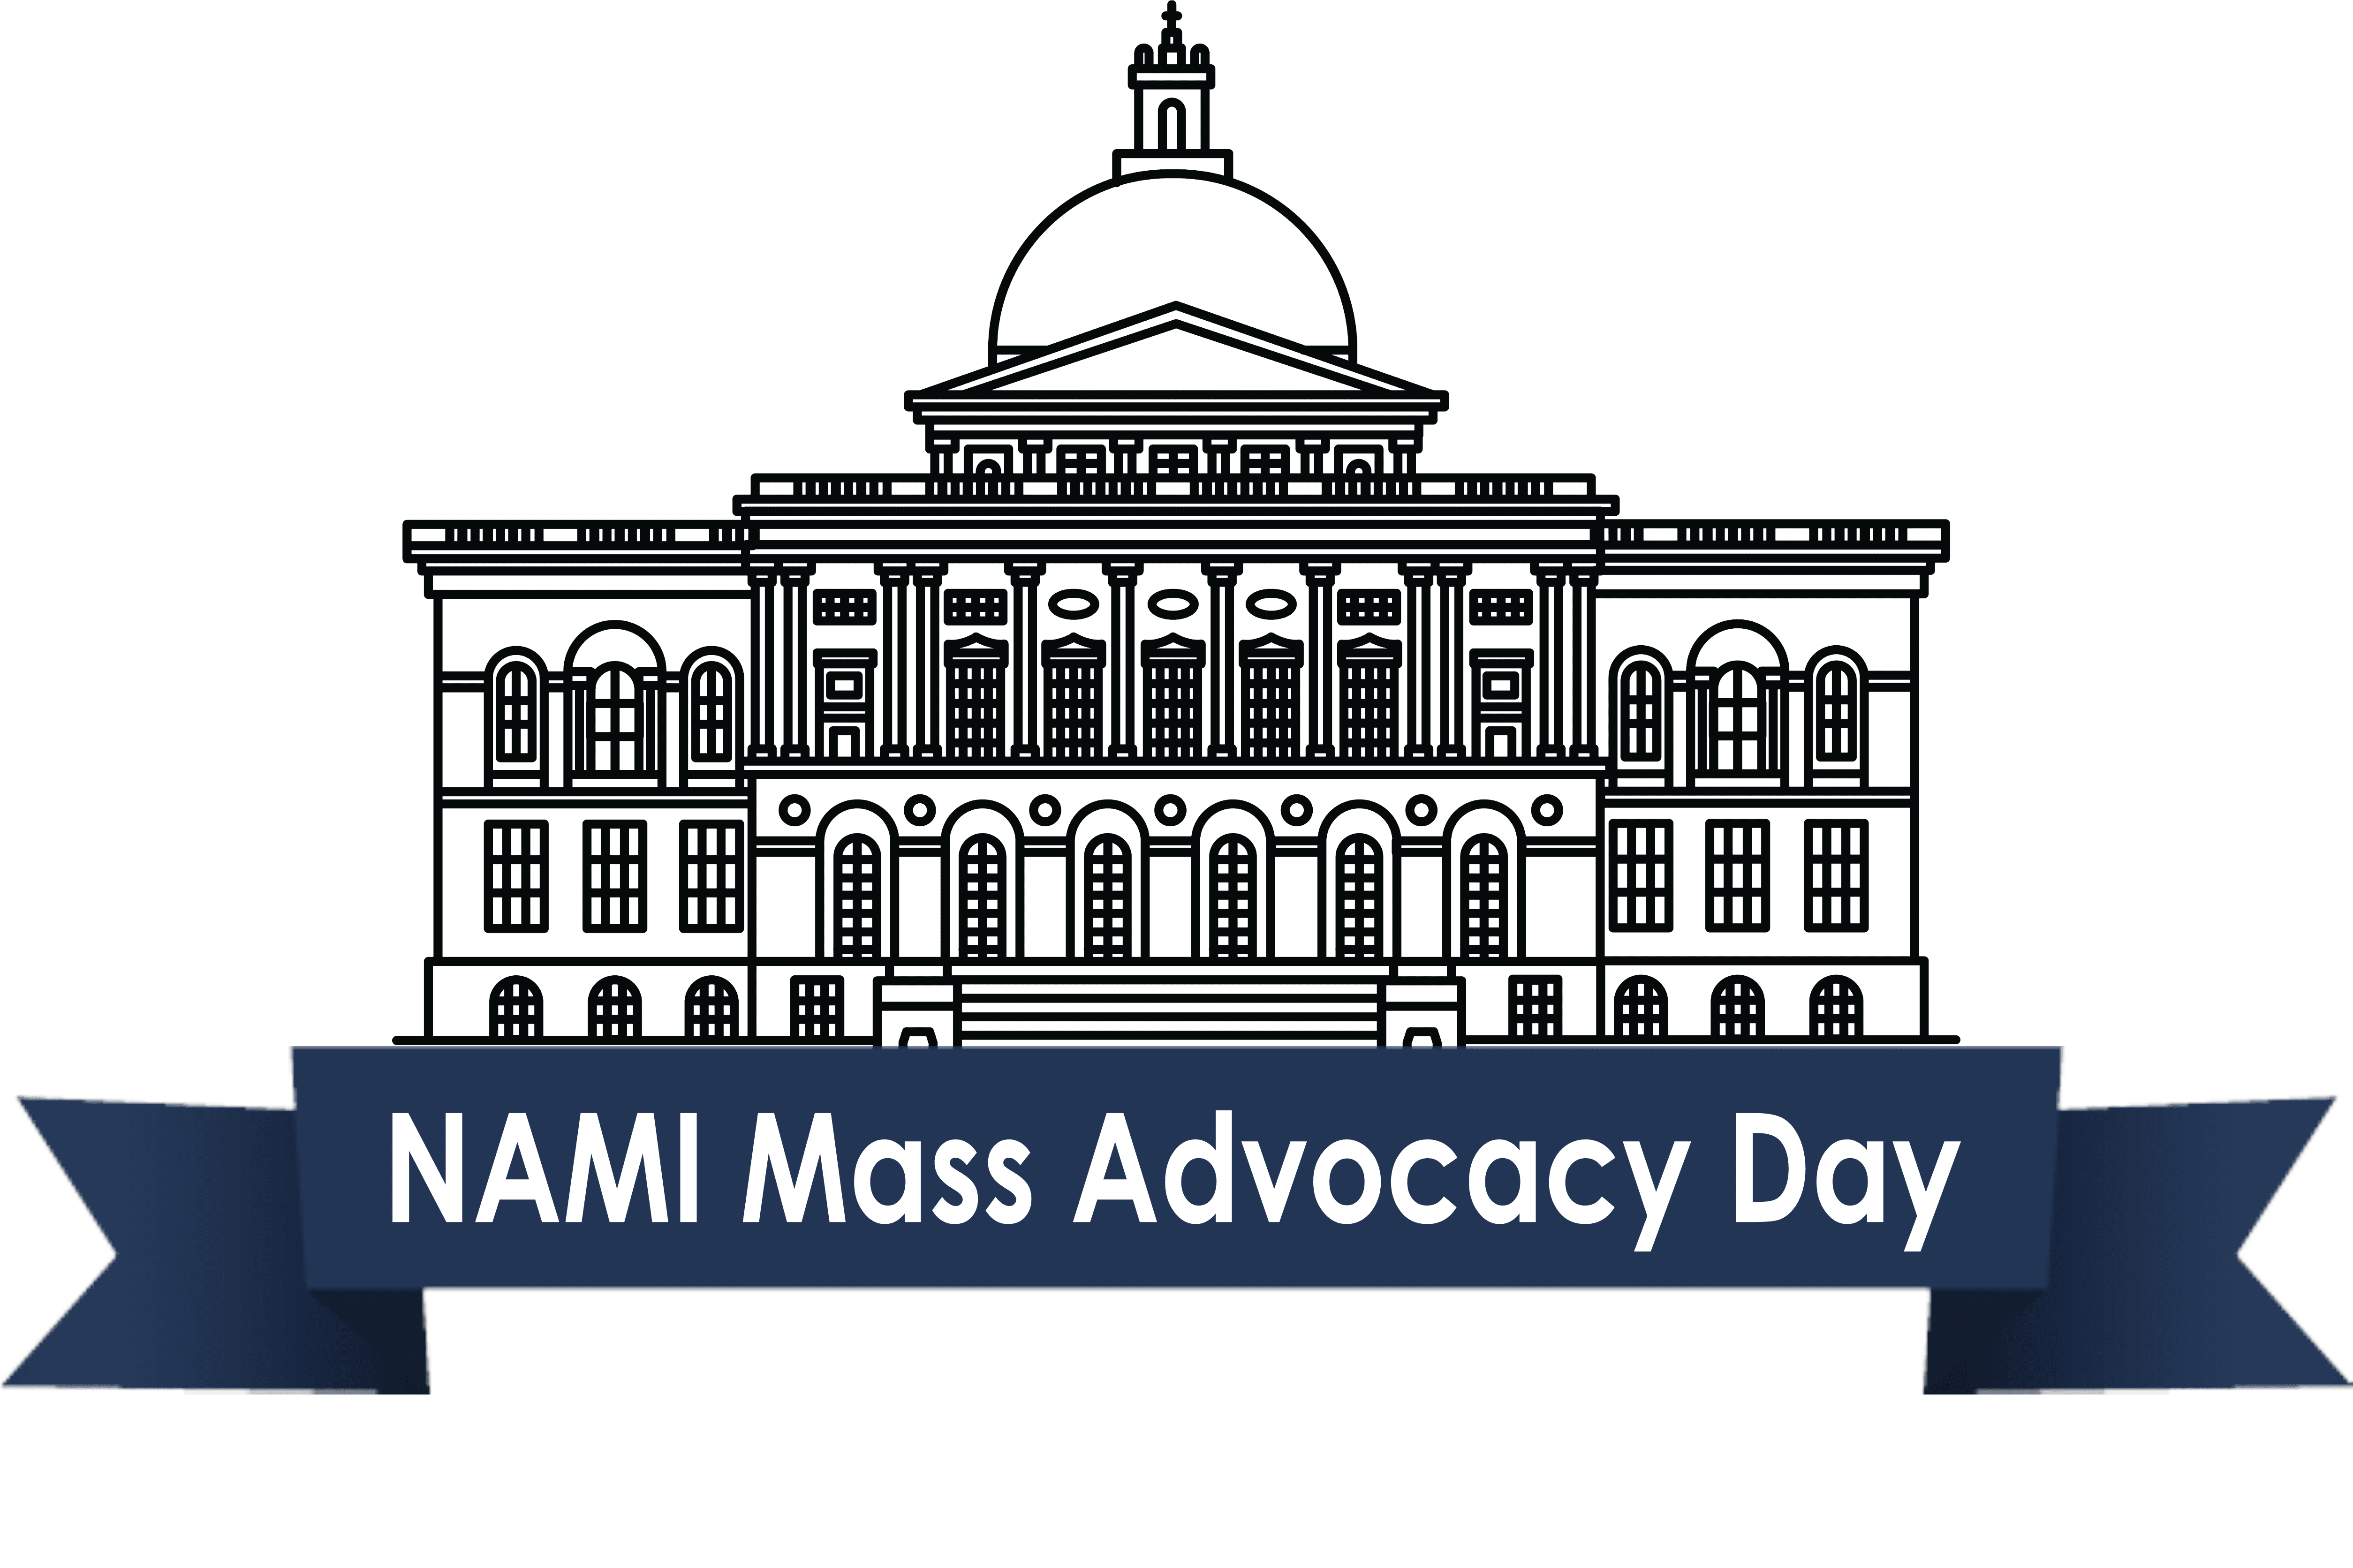 NAMI Massachusetts Advocacy Day logo